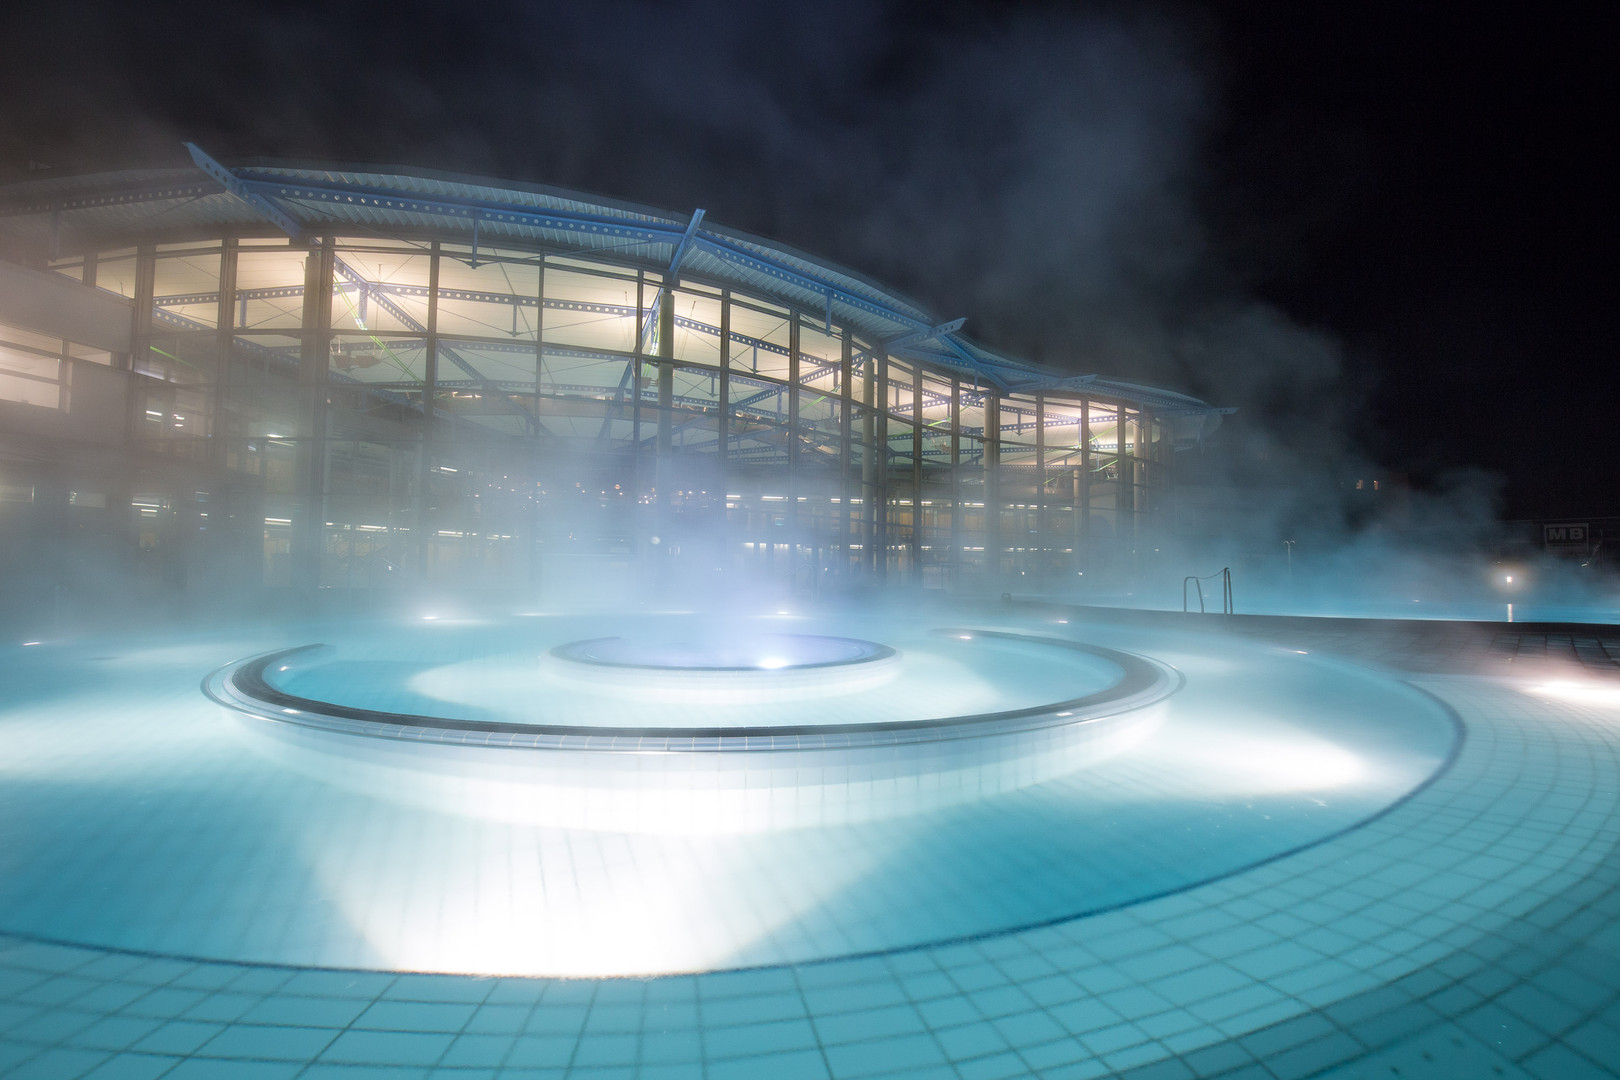 Heisse Quelle - Waldsee Therme